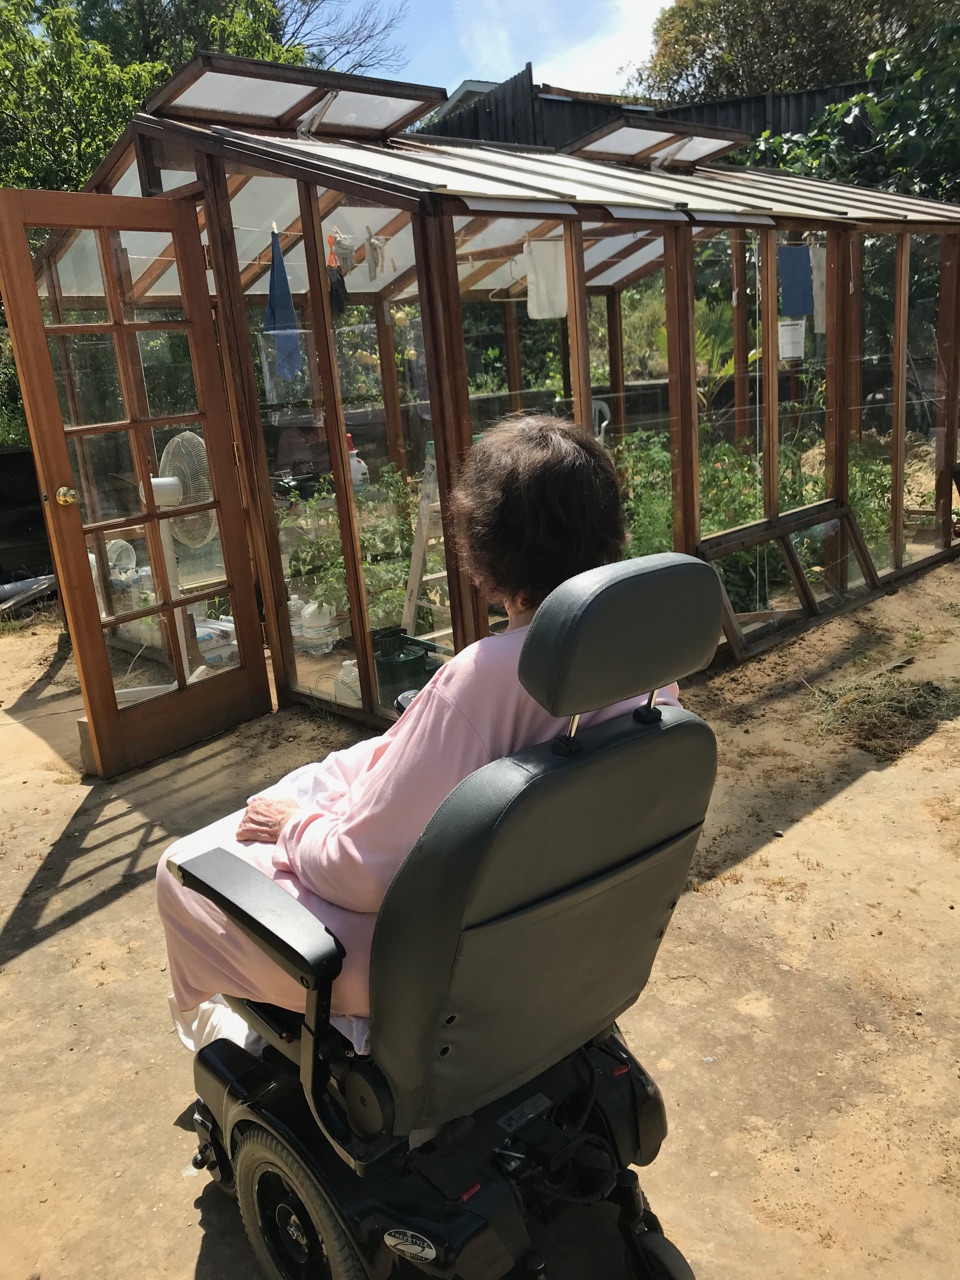 An image of a woman in a wheelchair looking at her garden.